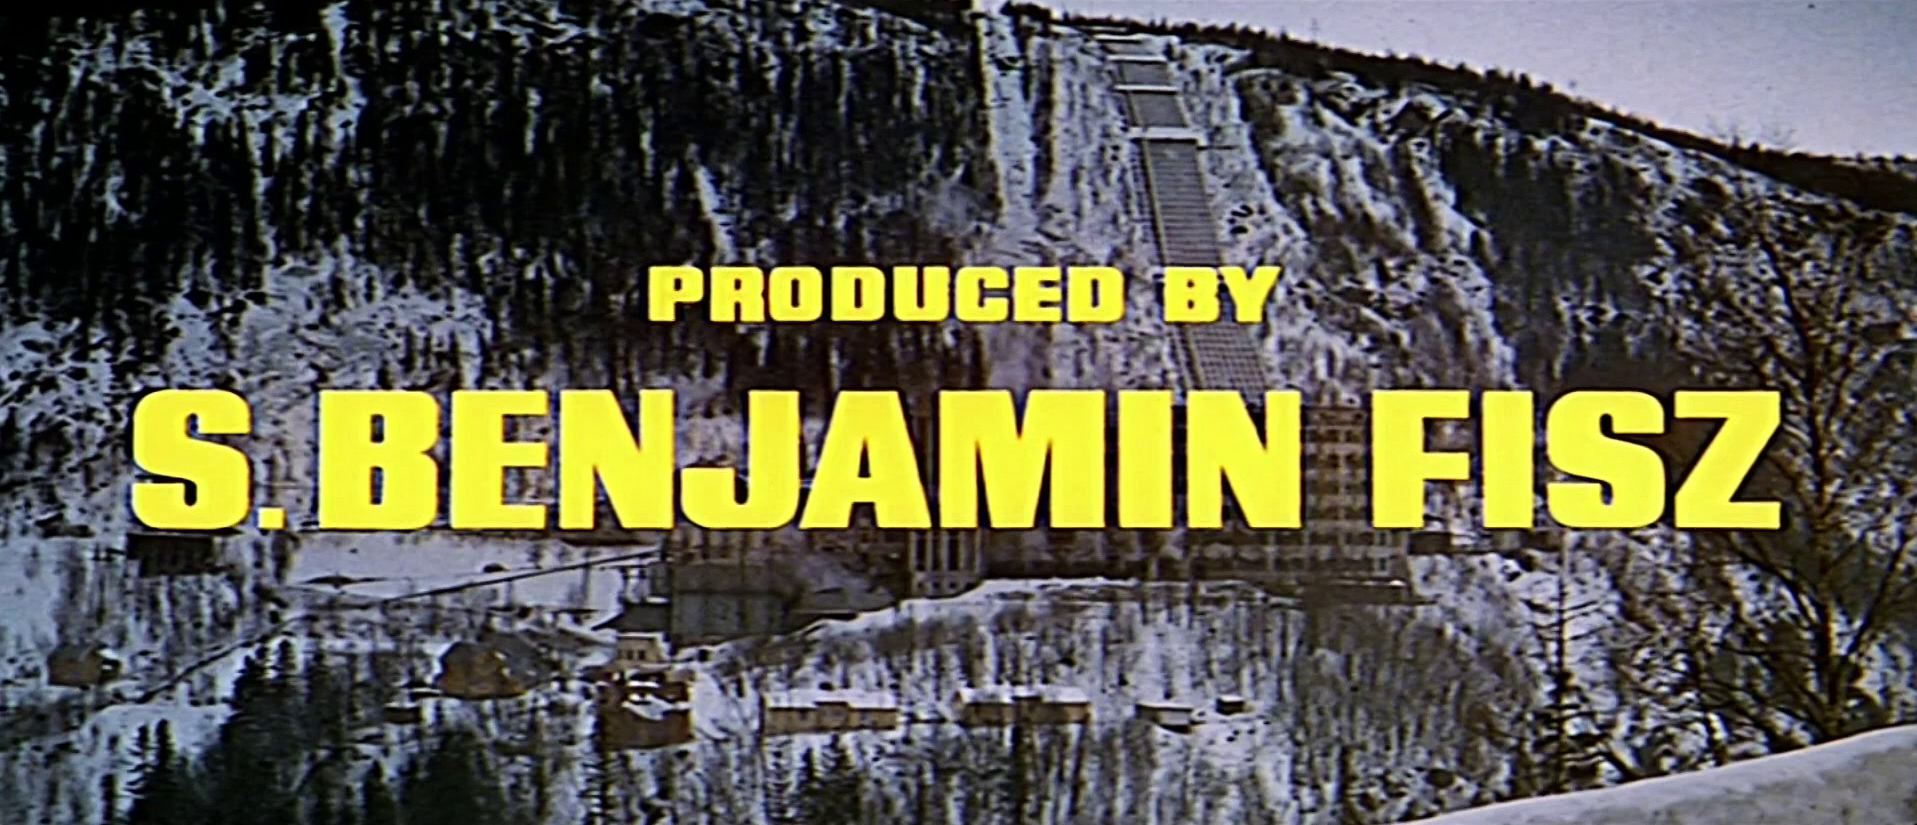 Main title from The Heroes of Telemark (1965) (17). Produced by S Benjamin Fisz